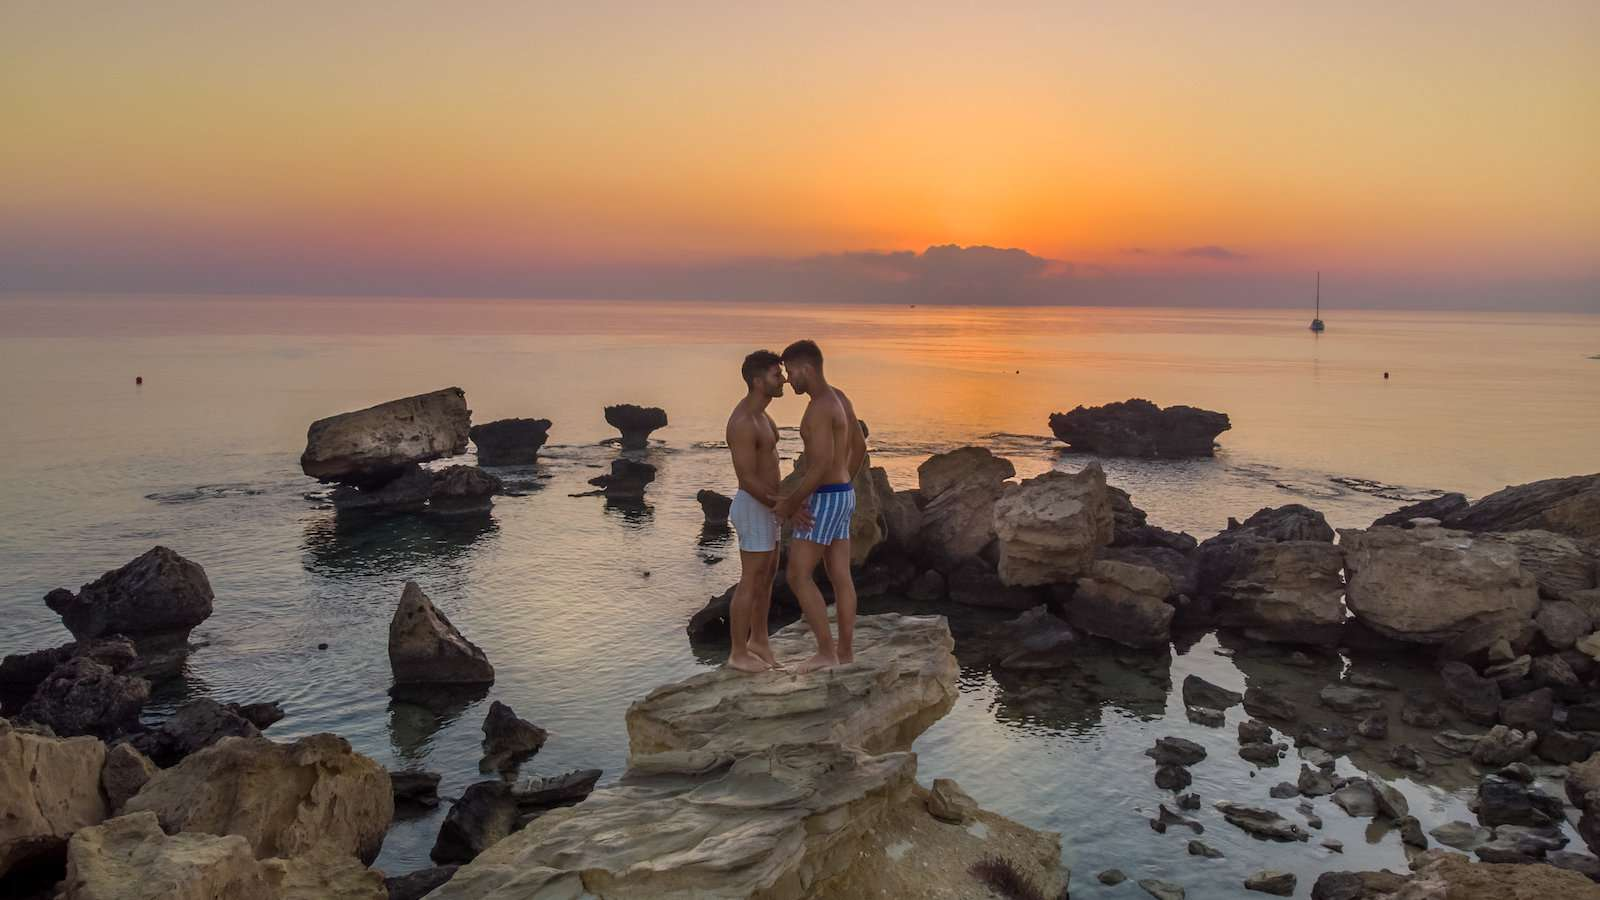 Cyprus is quite safe for gay travelers, although you should keep the PDA to a minimum in rural areas